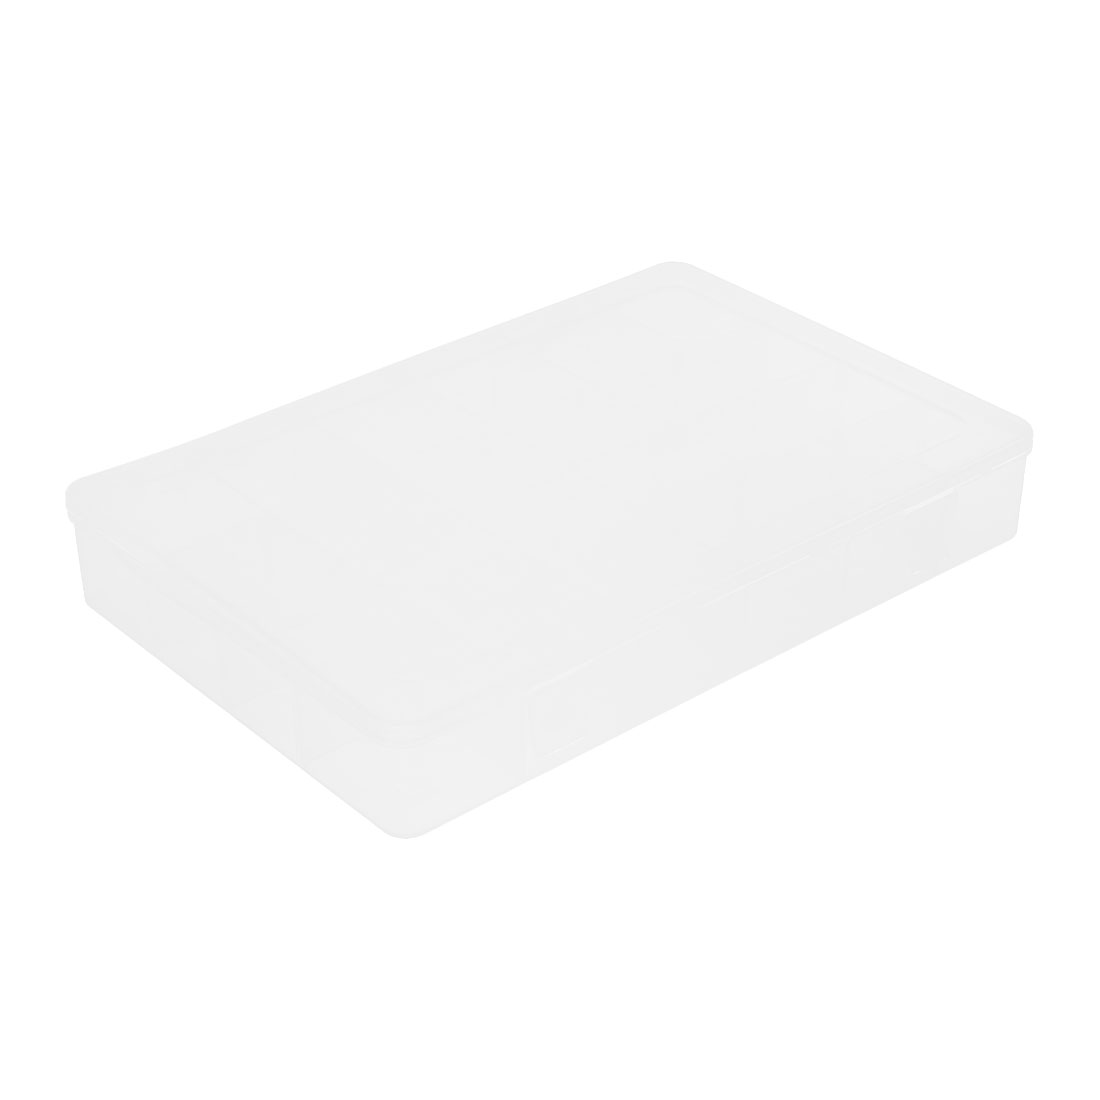 Home School Office Plastic Adjustable 24 Compartments Storage Box Clear White